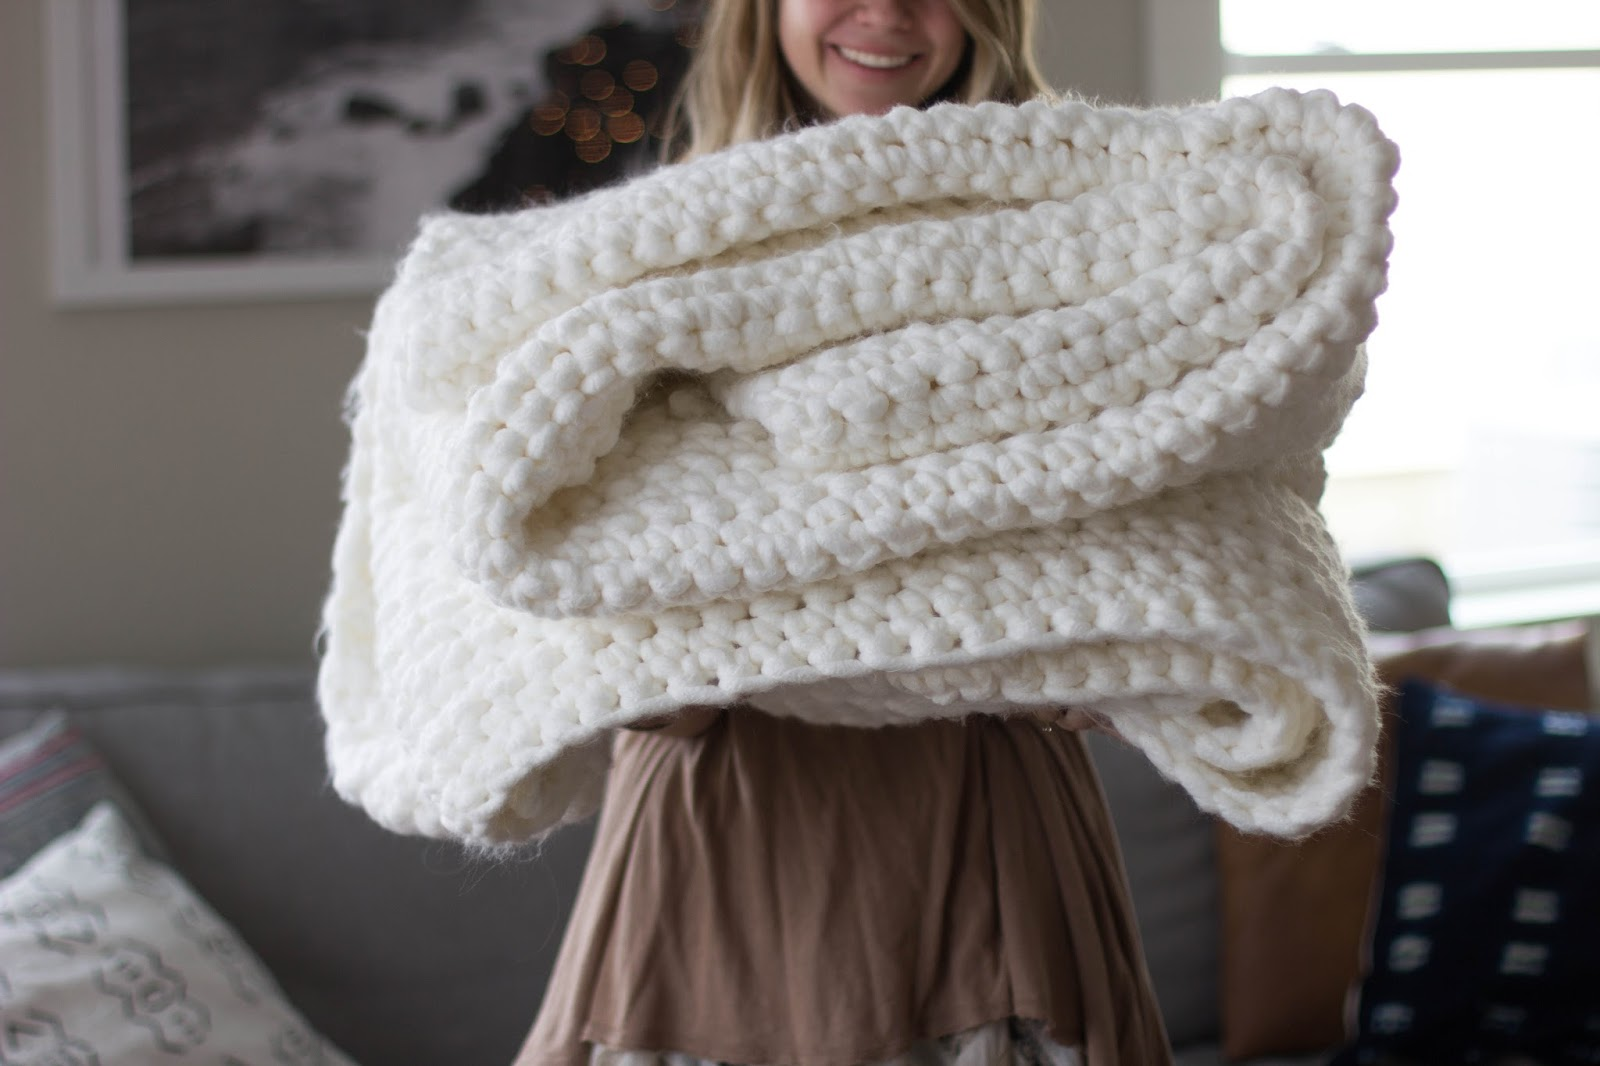 Crochet Patterns Large Hook : As you can see, it is rather large and chunky and just all around cozy ...